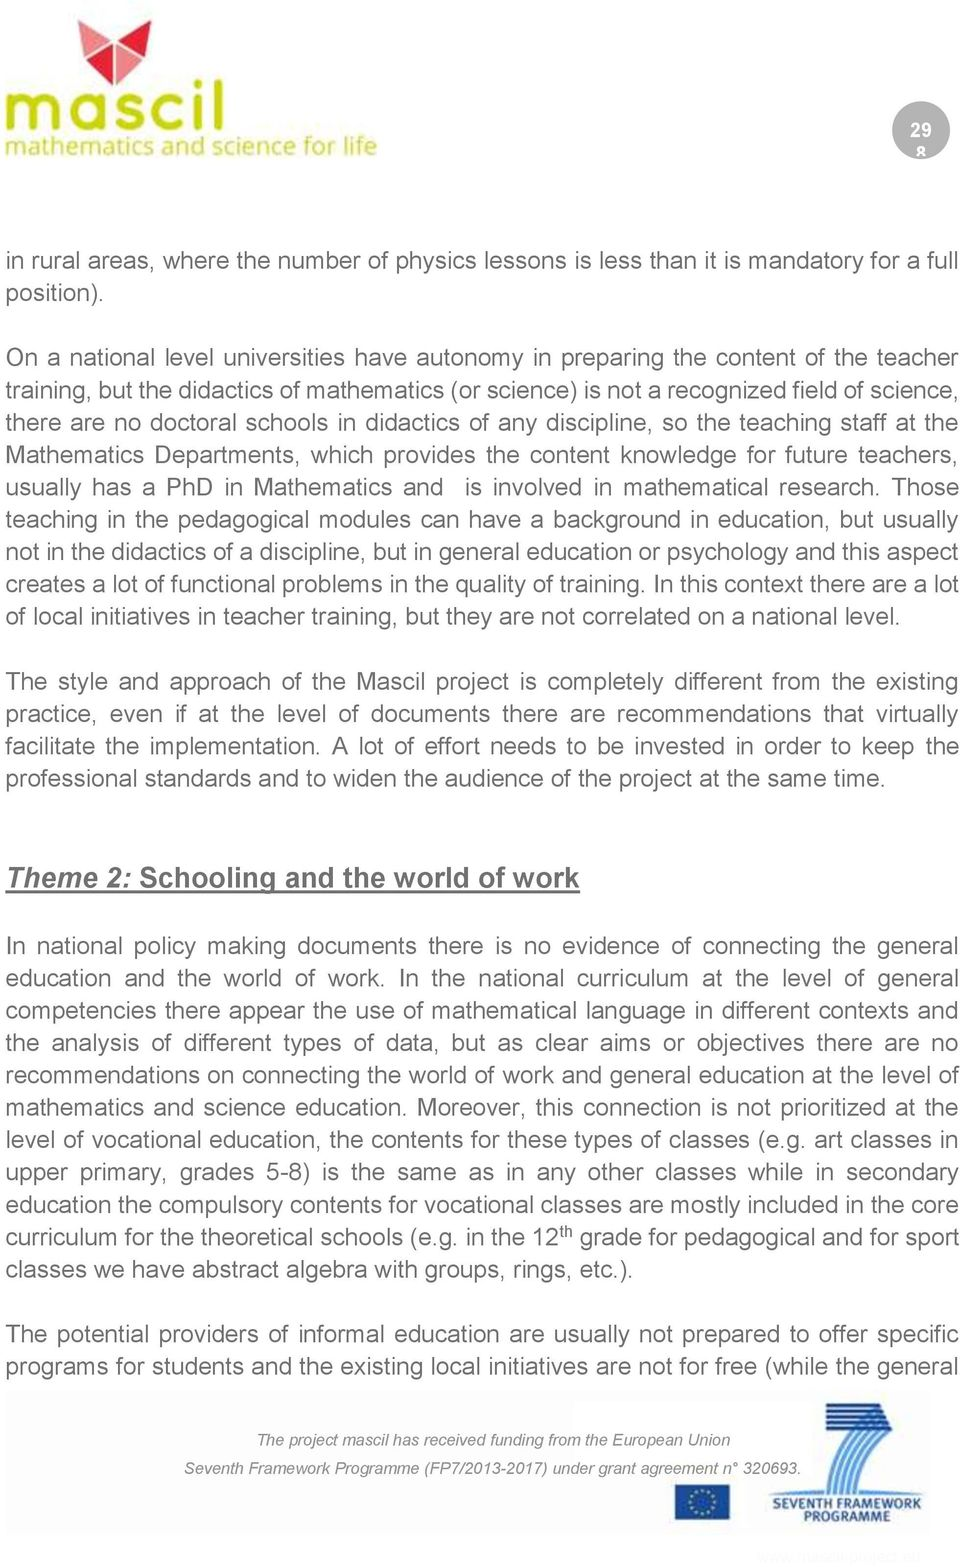 doctoral schools in didactics of any discipline, so the teaching staff at the Mathematics Departments, which provides the content knowledge for future teachers, usually has a PhD in Mathematics and